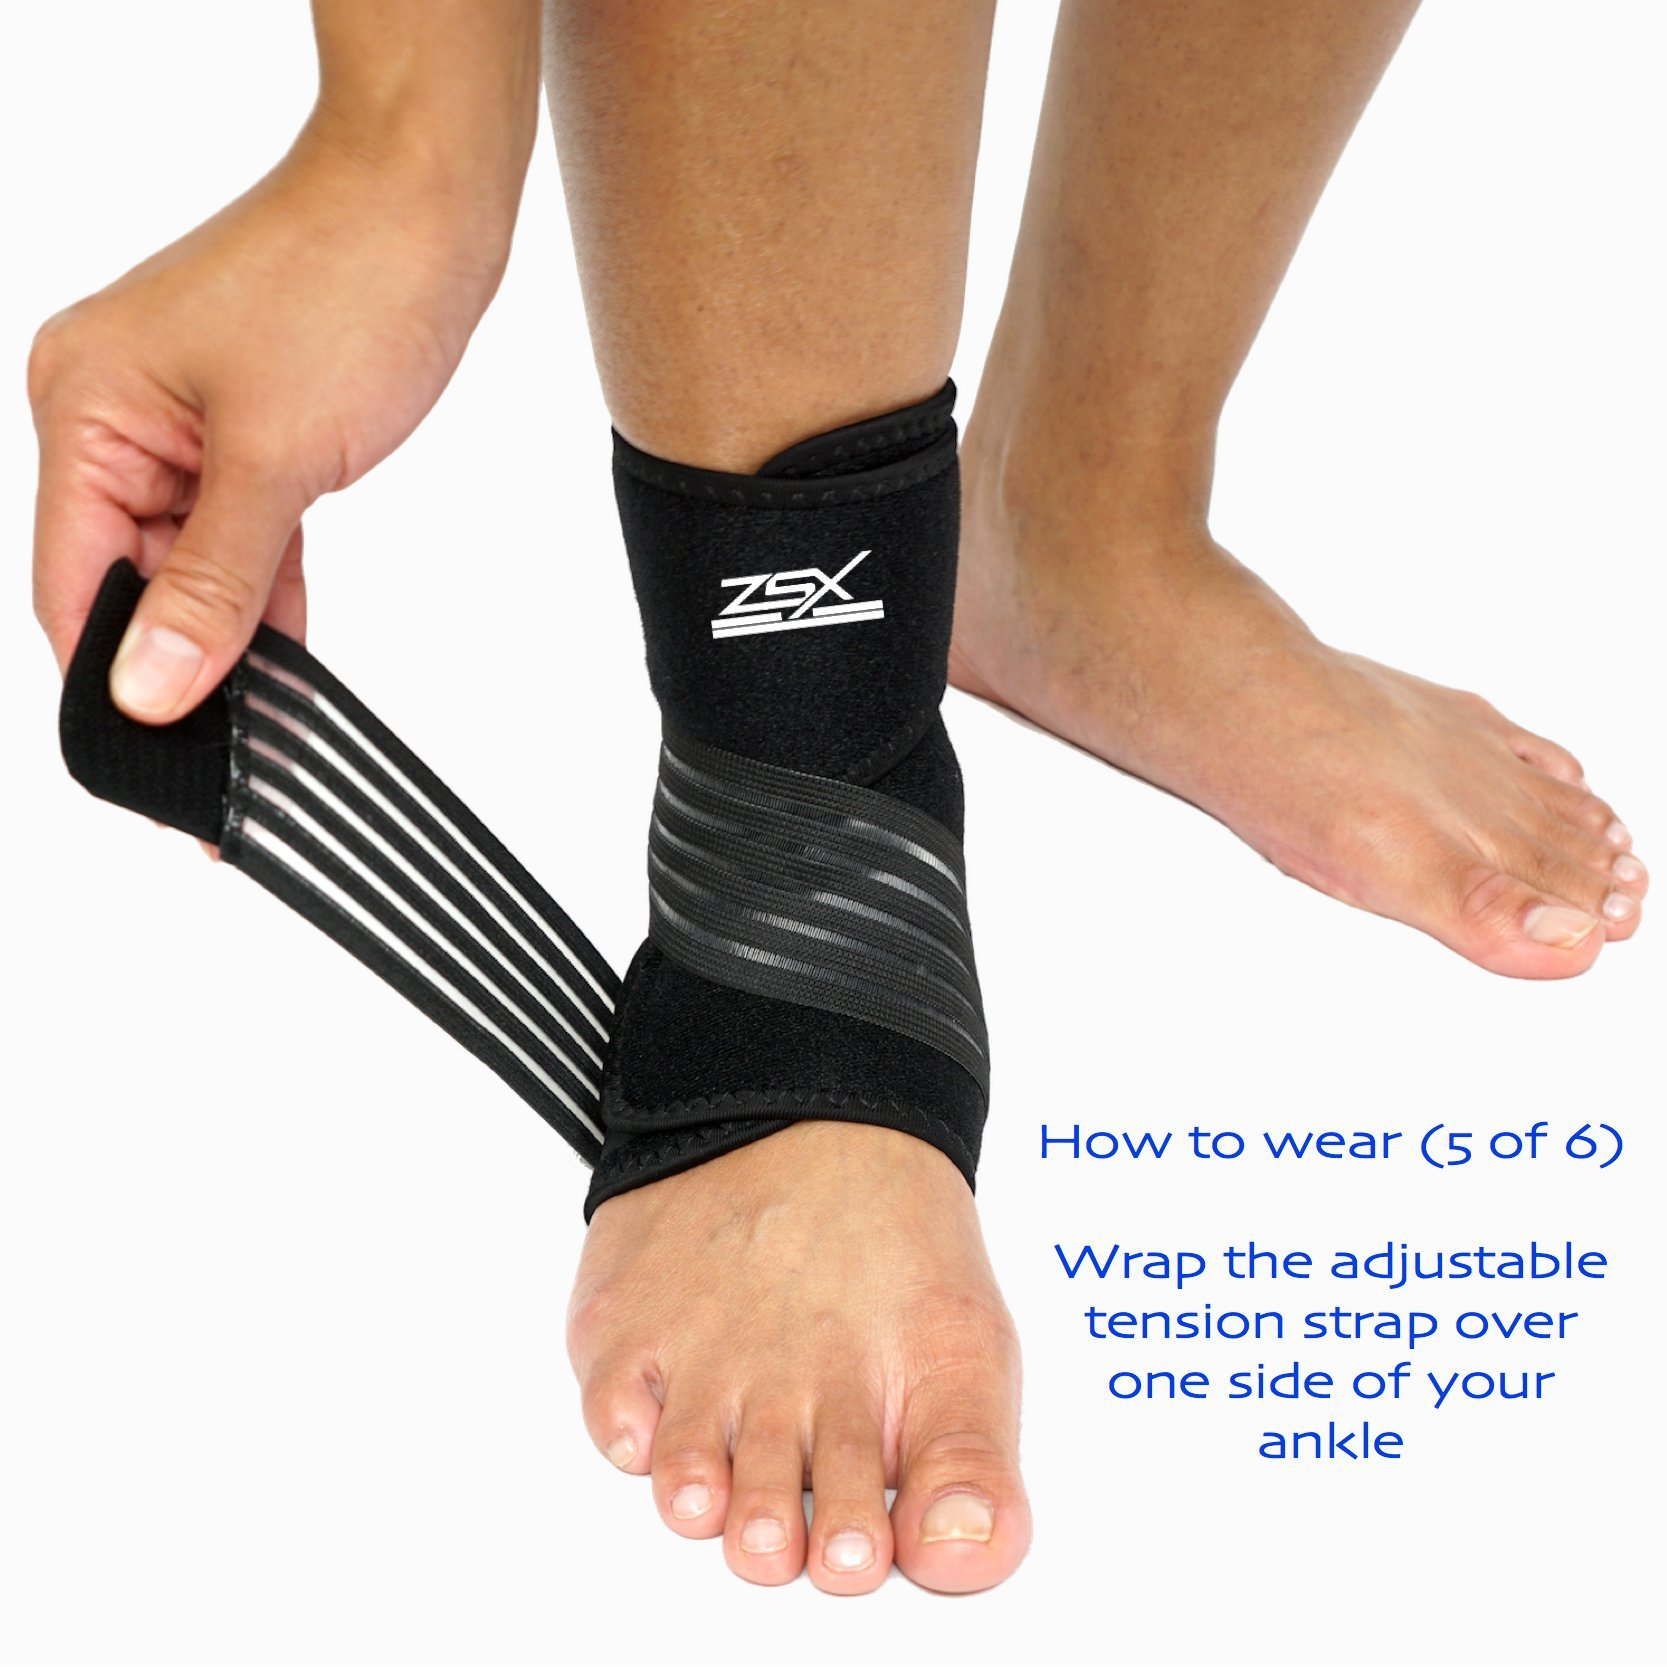 Ankle Brace (PAIR) with Bonus Straps, for Ankle Support, Plantar Fasciitis, or Swollen Ankles, One Size Fits Most, By ZSX SPORT (Foot Size - Reg) by ZSX (Image #7)